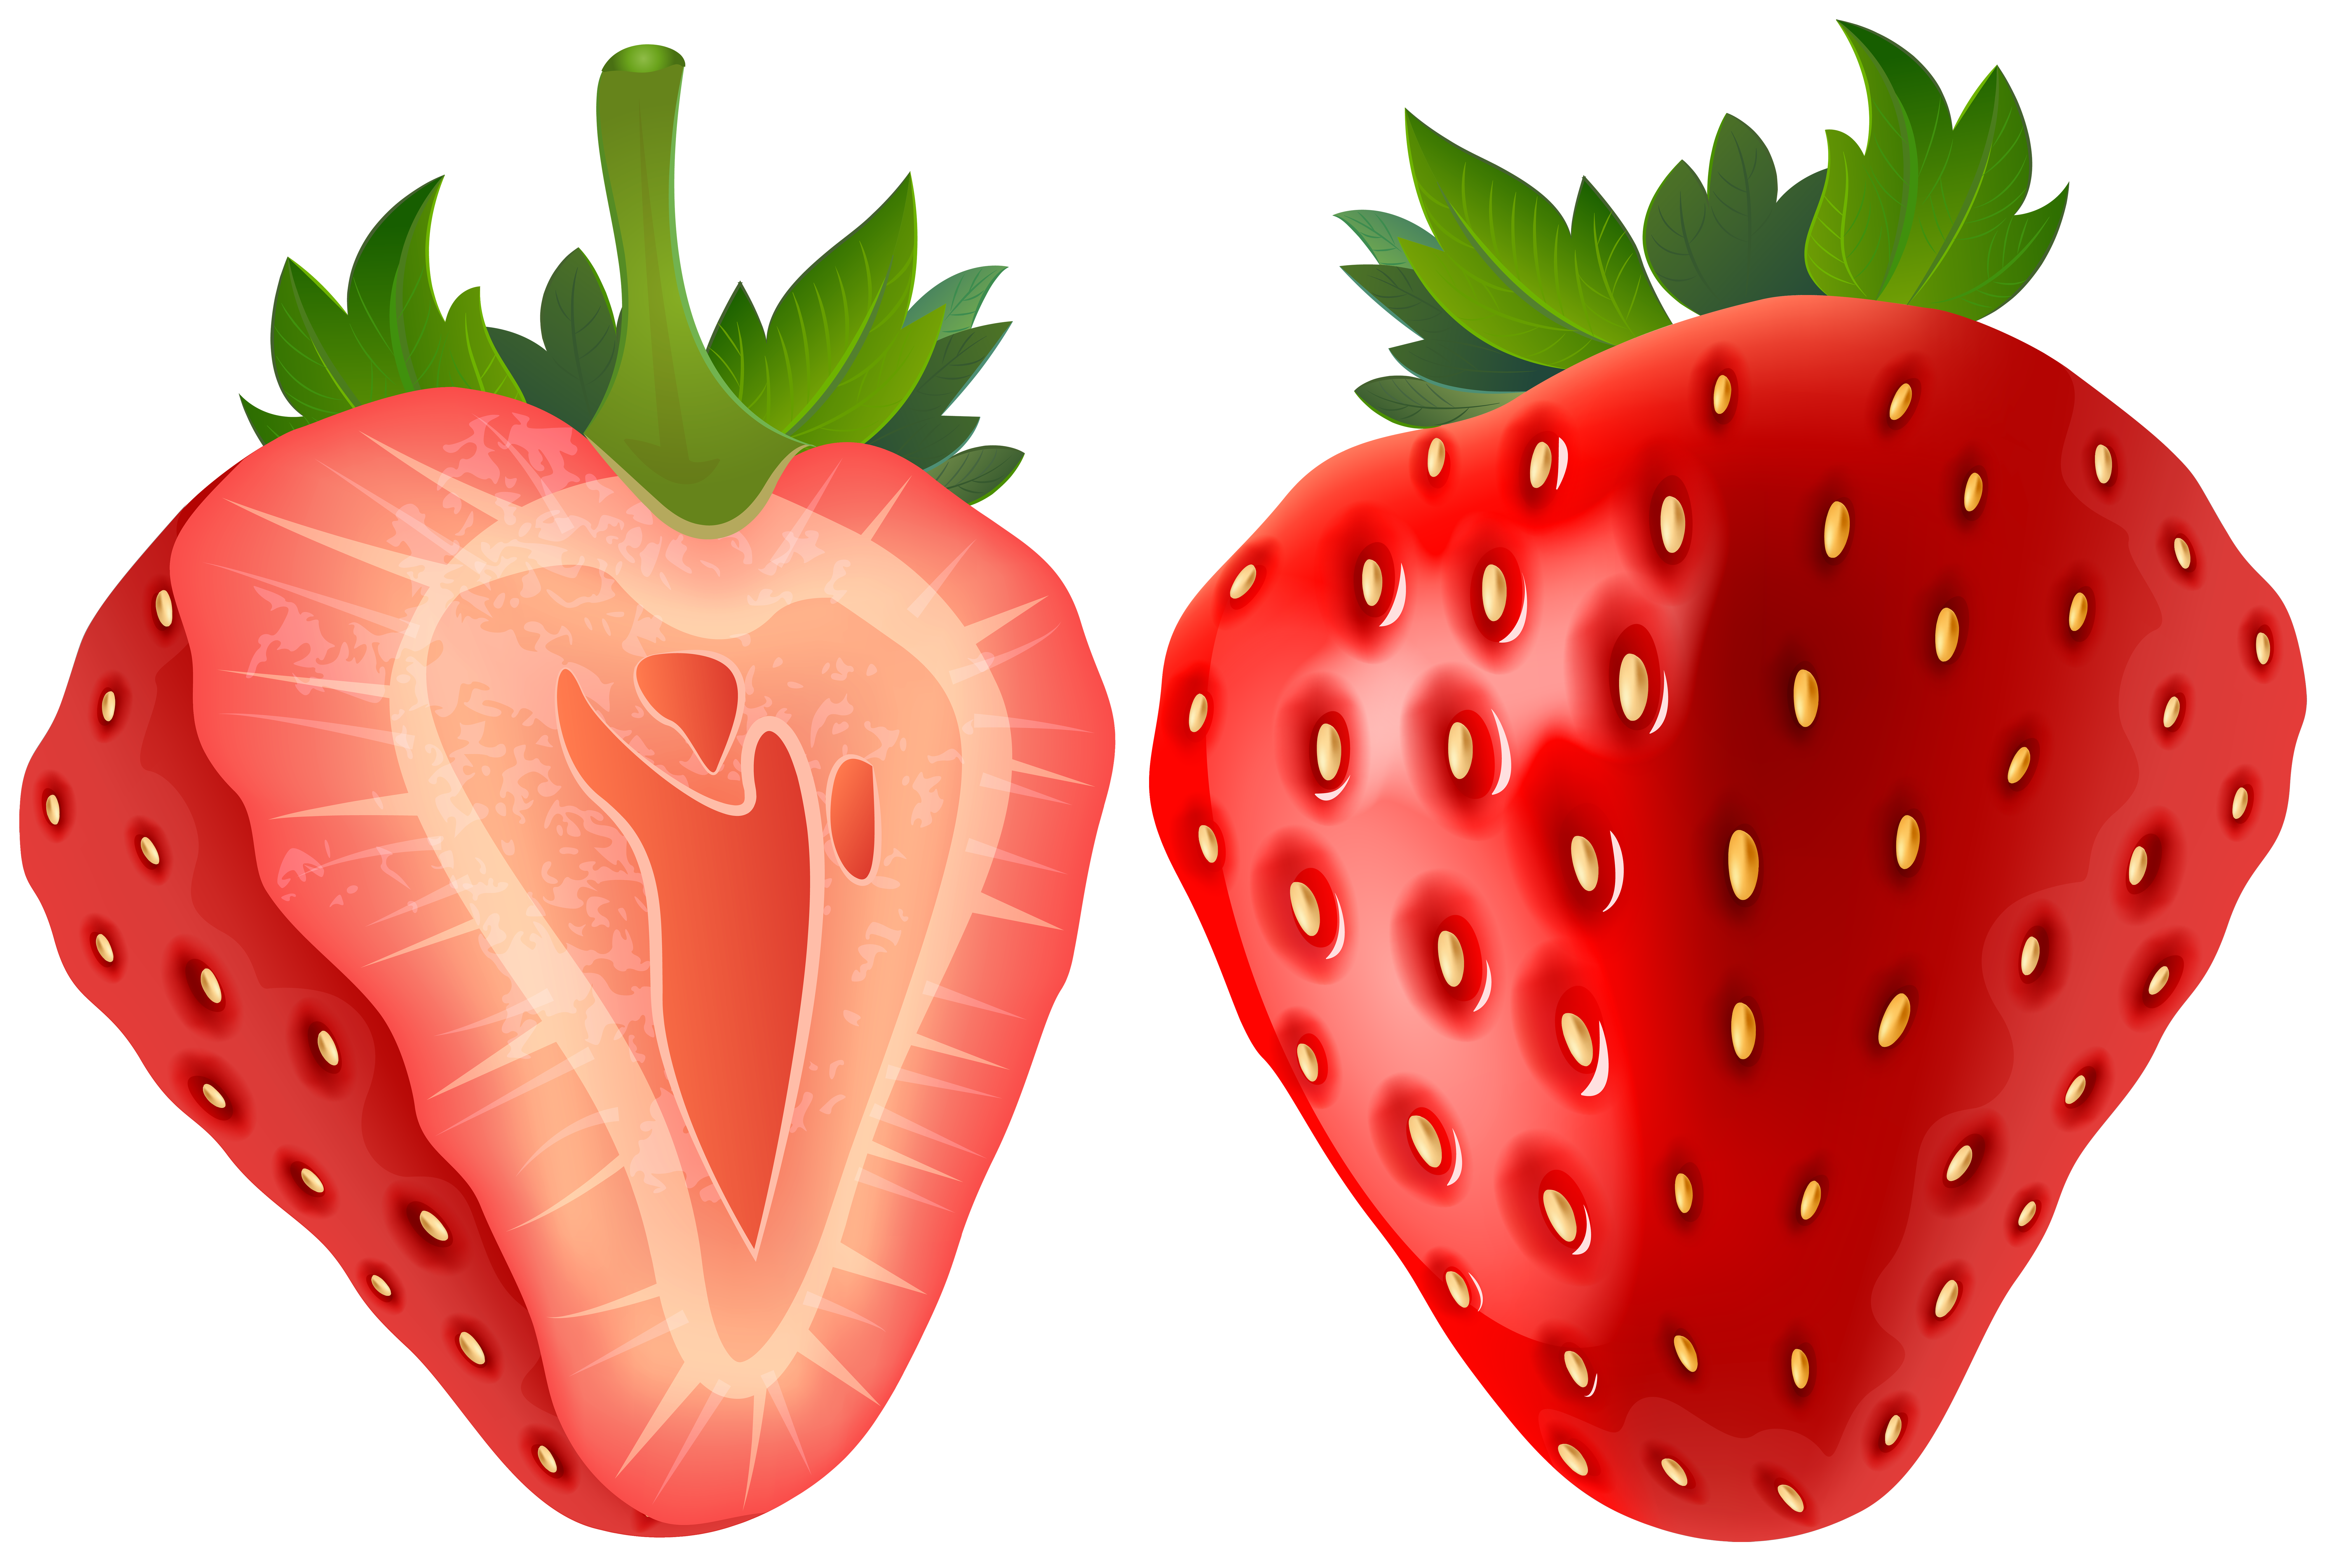 Strawberry heart clipart image transparent download Strawberry Transparent PNG Clip Art Image | Gallery Yopriceville ... image transparent download